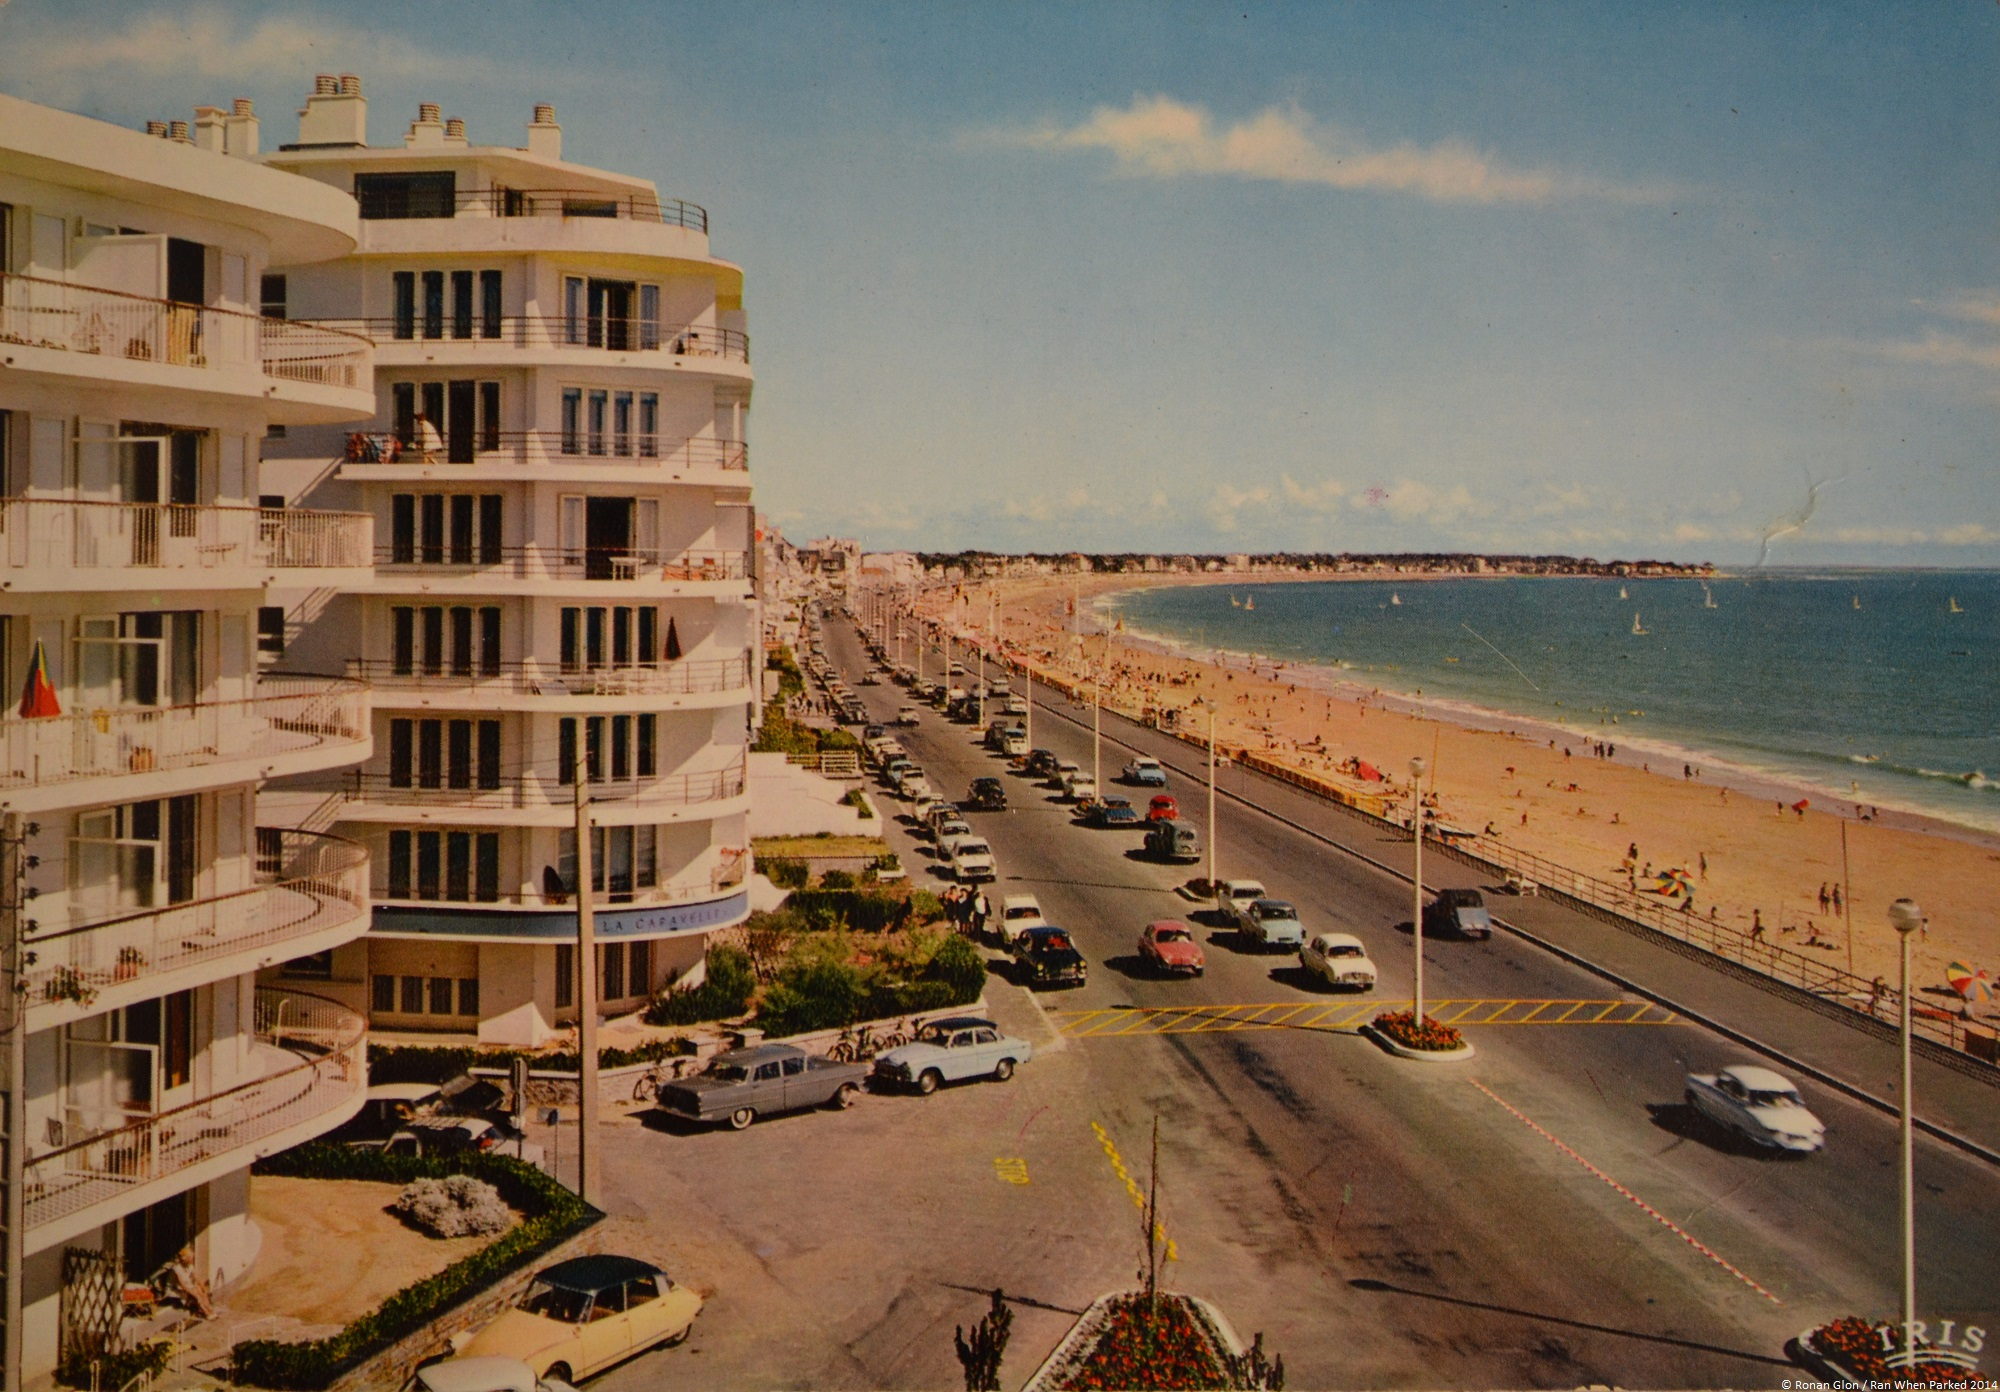 La Baule France  City new picture : Rewind to La Baule, France, in the late 1960s / early 1970s | Ran When ...